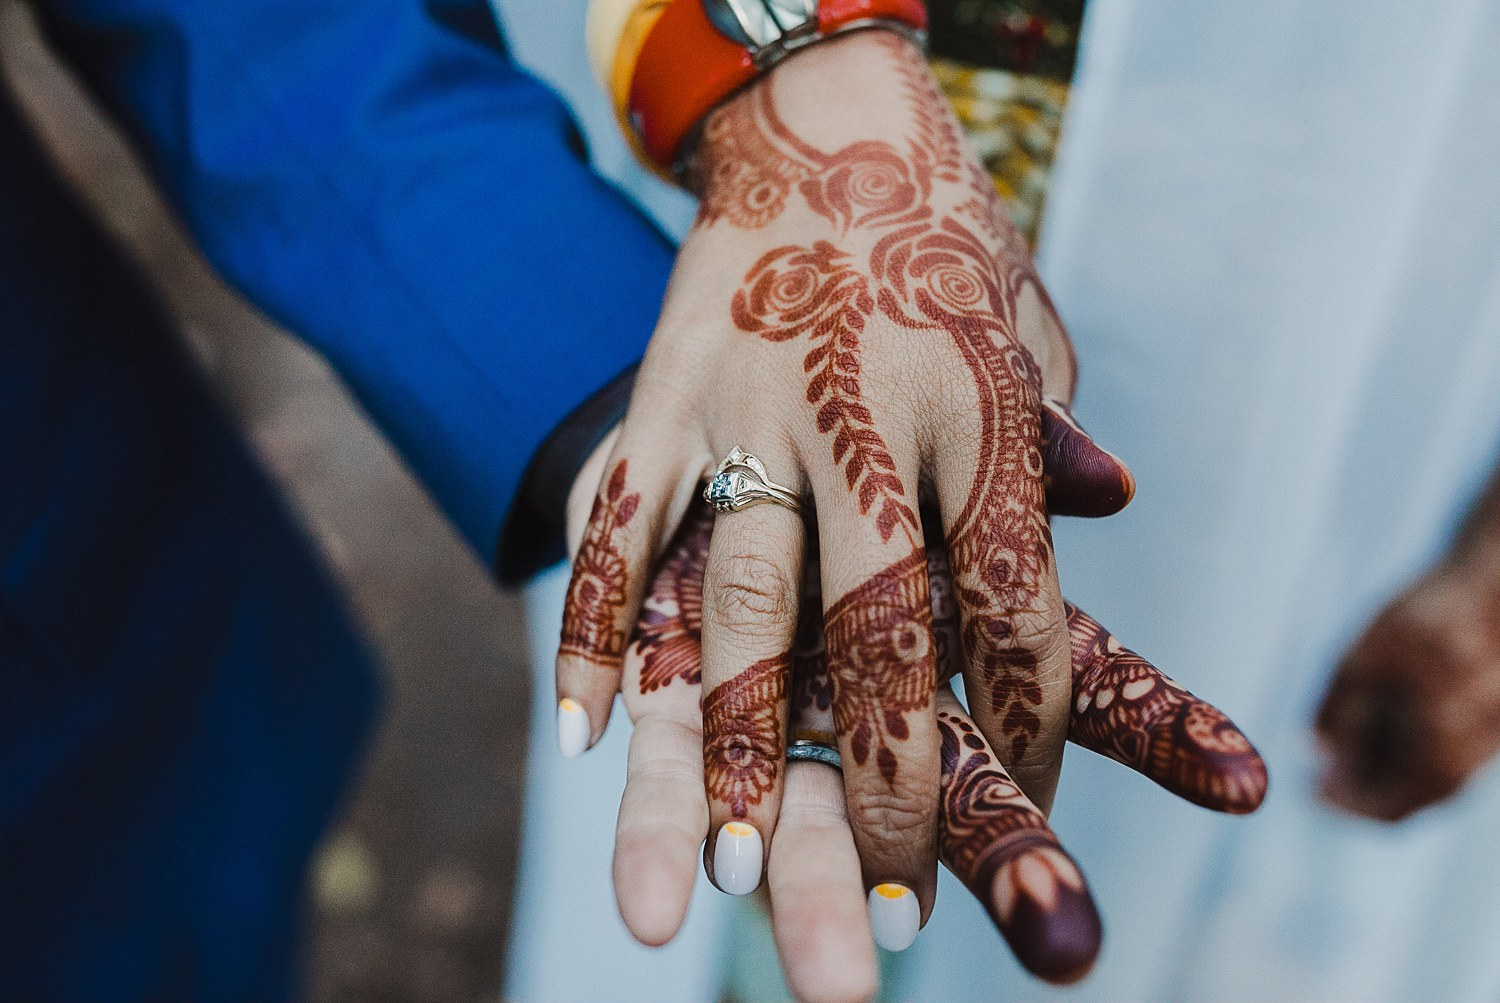 Wedding ring on a hand decorated with wedding henna.